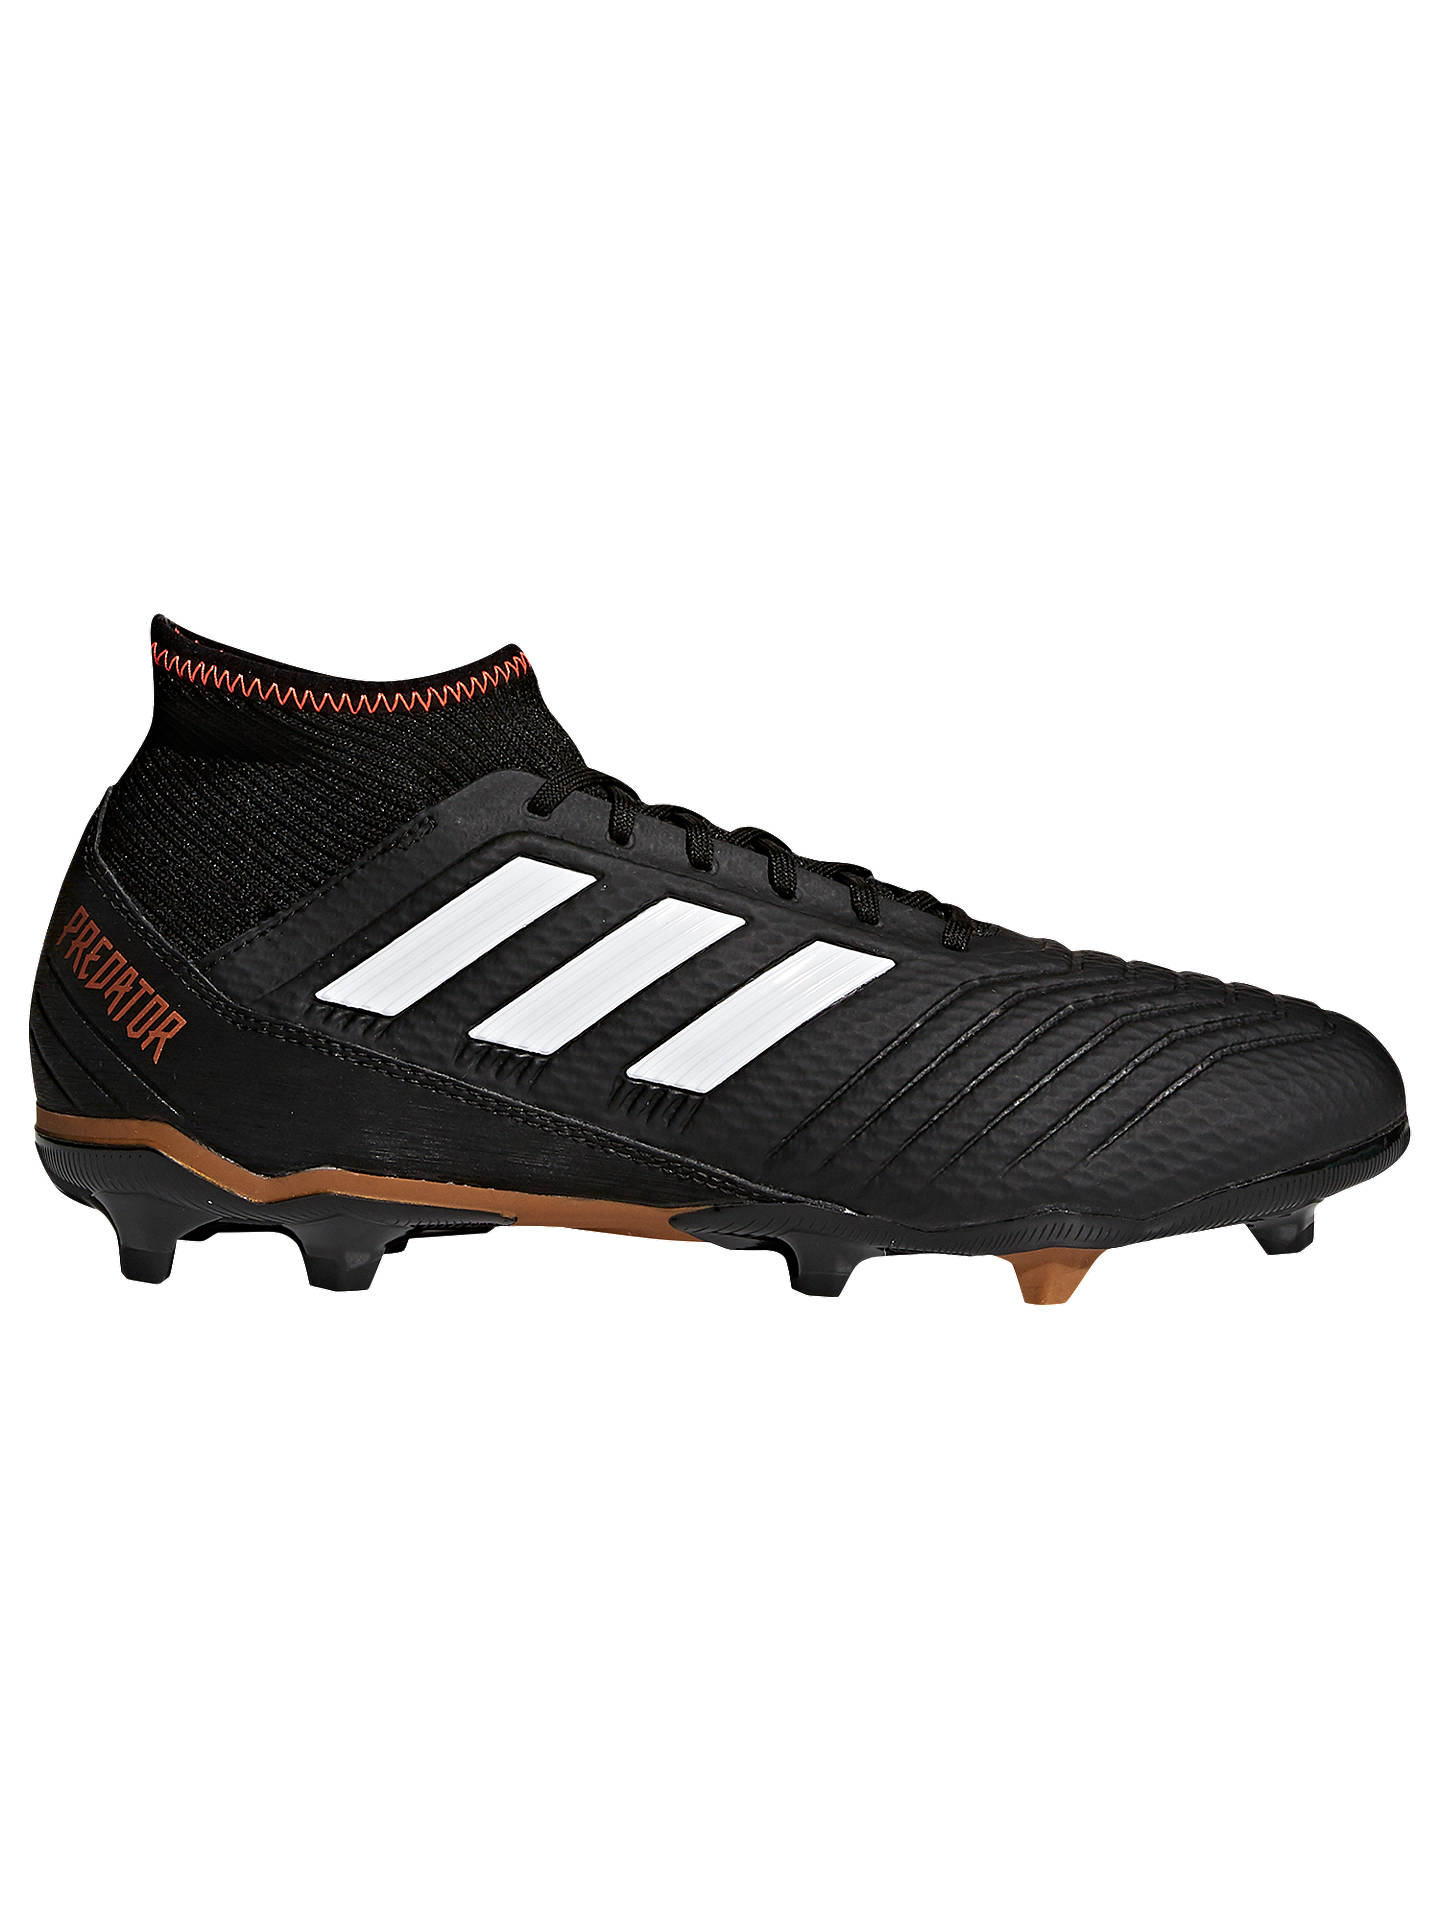 new product 23a43 52ea9 Buyadidas Predator Ace 18.3 Football Boots, Black, 7 Online at  johnlewis.com ...